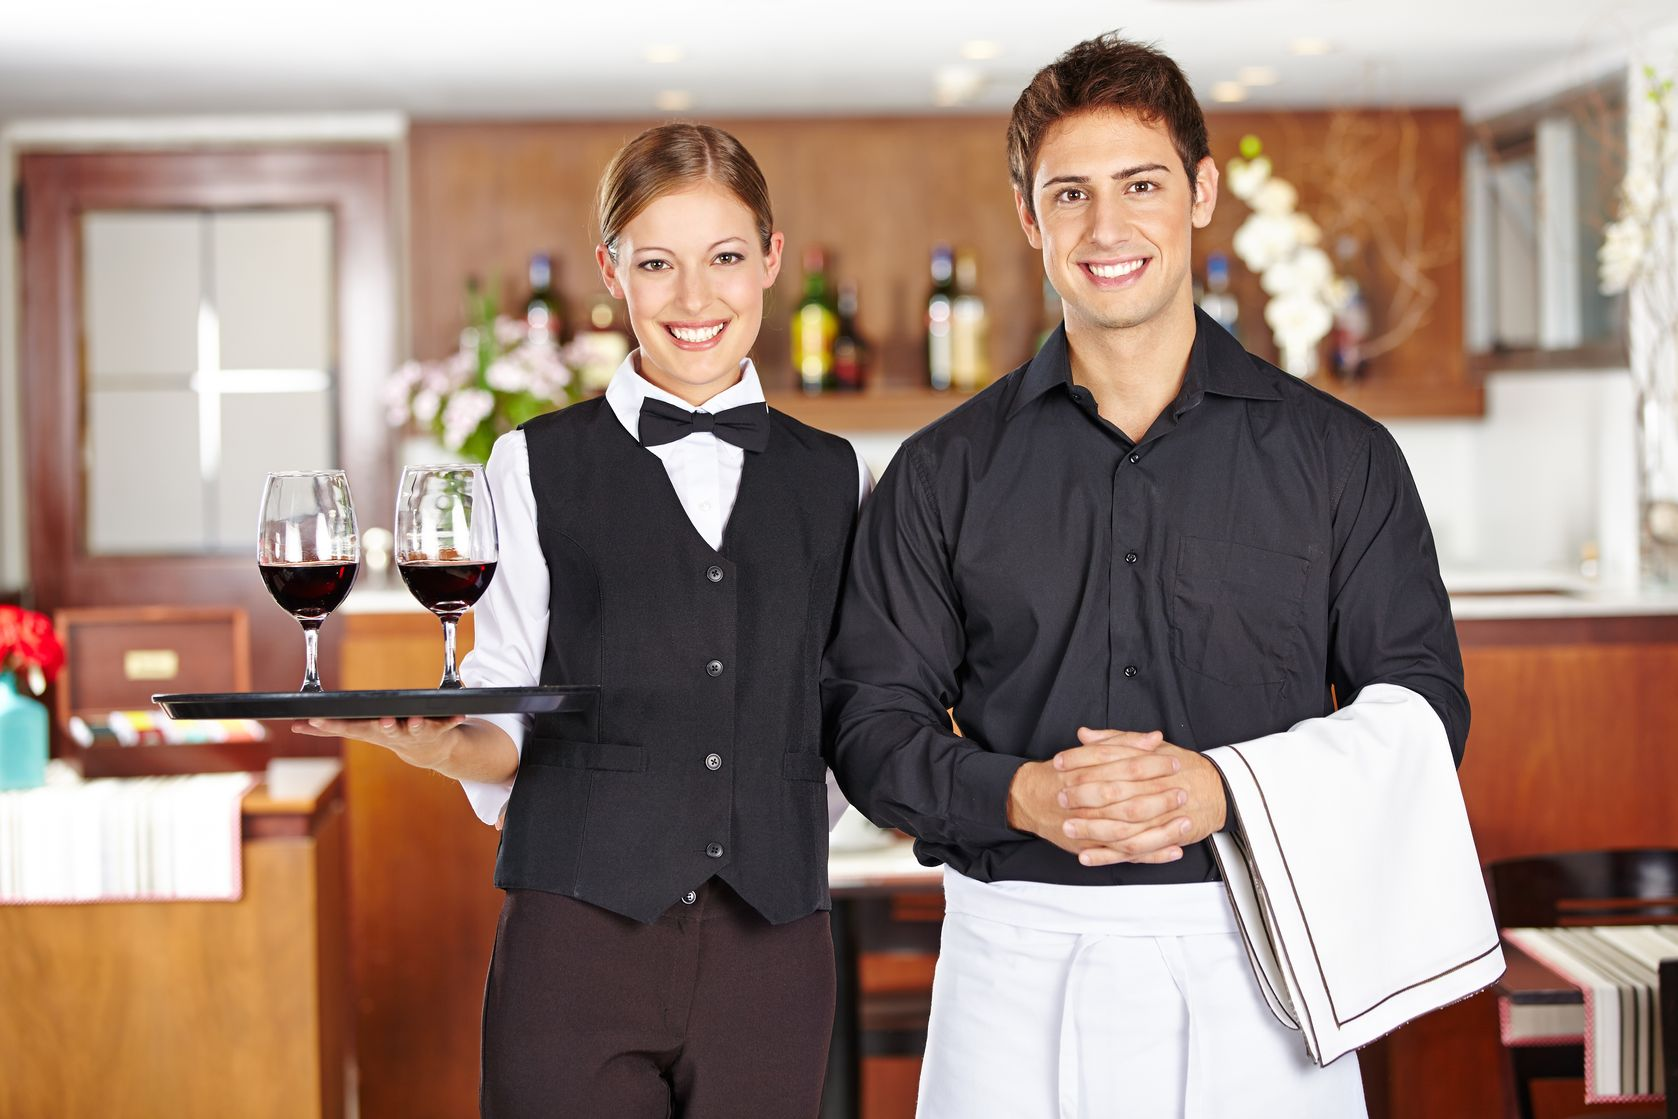 event-and-catering-business-for-sale-in-brisbane-0